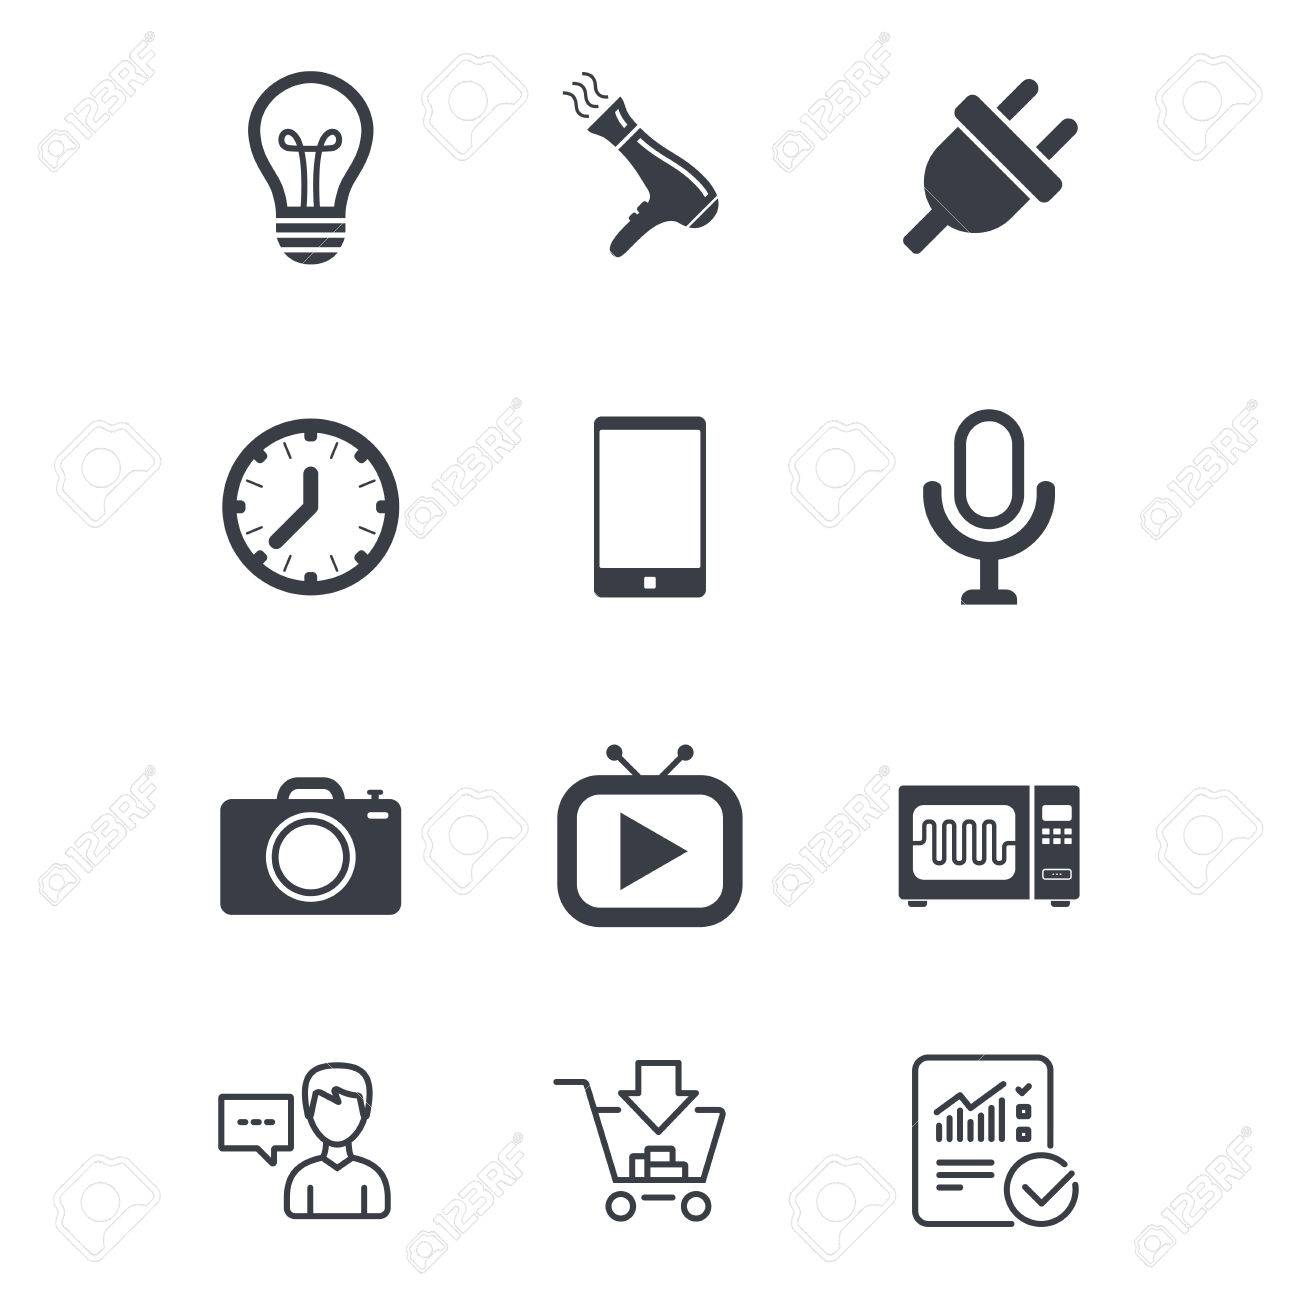 Home appliances, device icons  Electronics signs  Lamp, electrical